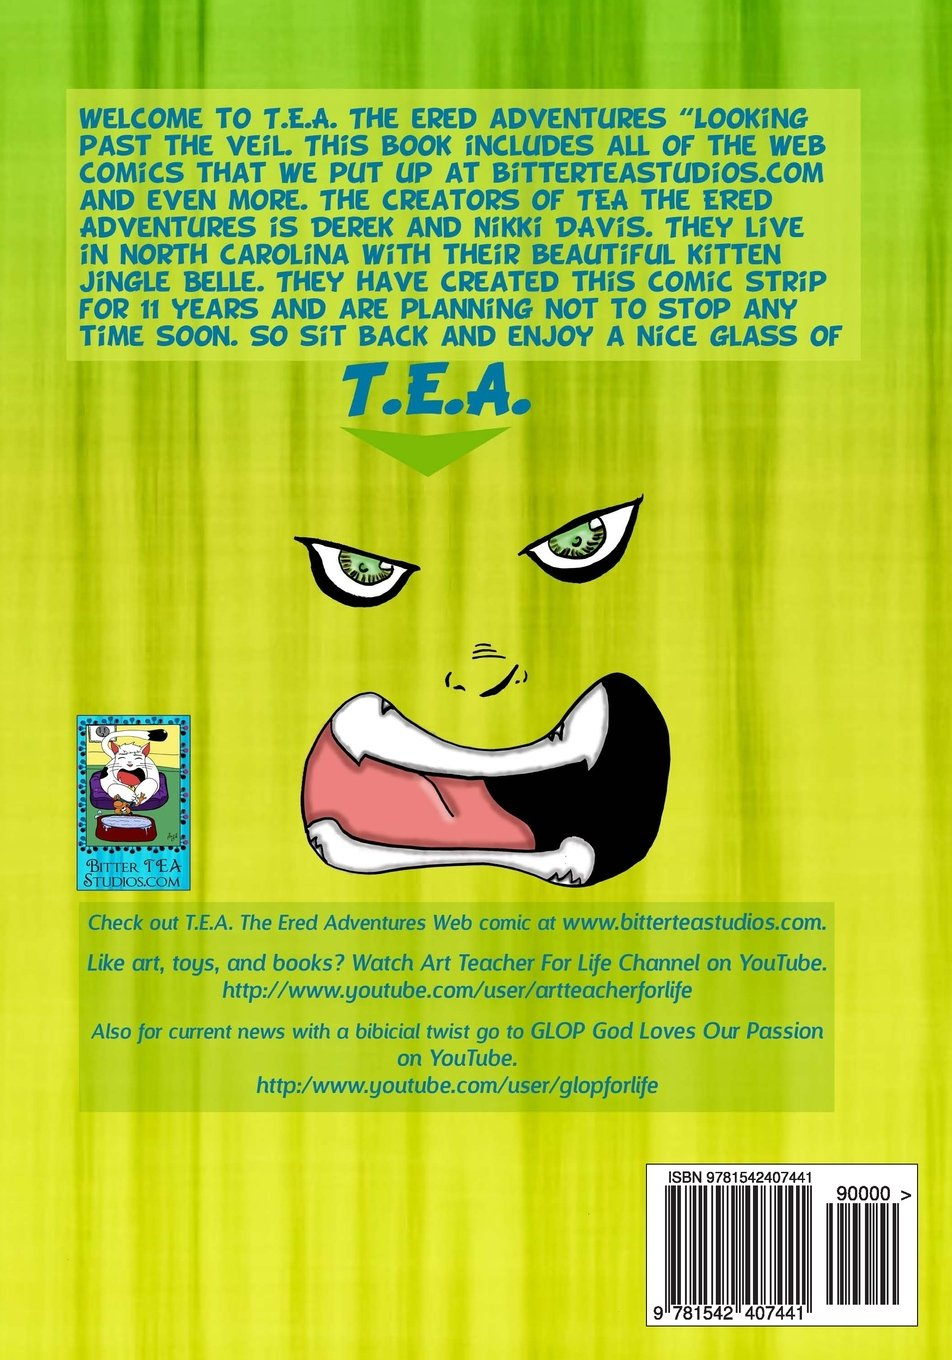 T.E.A. The Ered Adventures Looking Beyond the Veil: Looking Beyond the Veil:  Mr. Derek B Davis, Mrs. Nikki L. Davis: 9781542407441: Amazon.com: Books